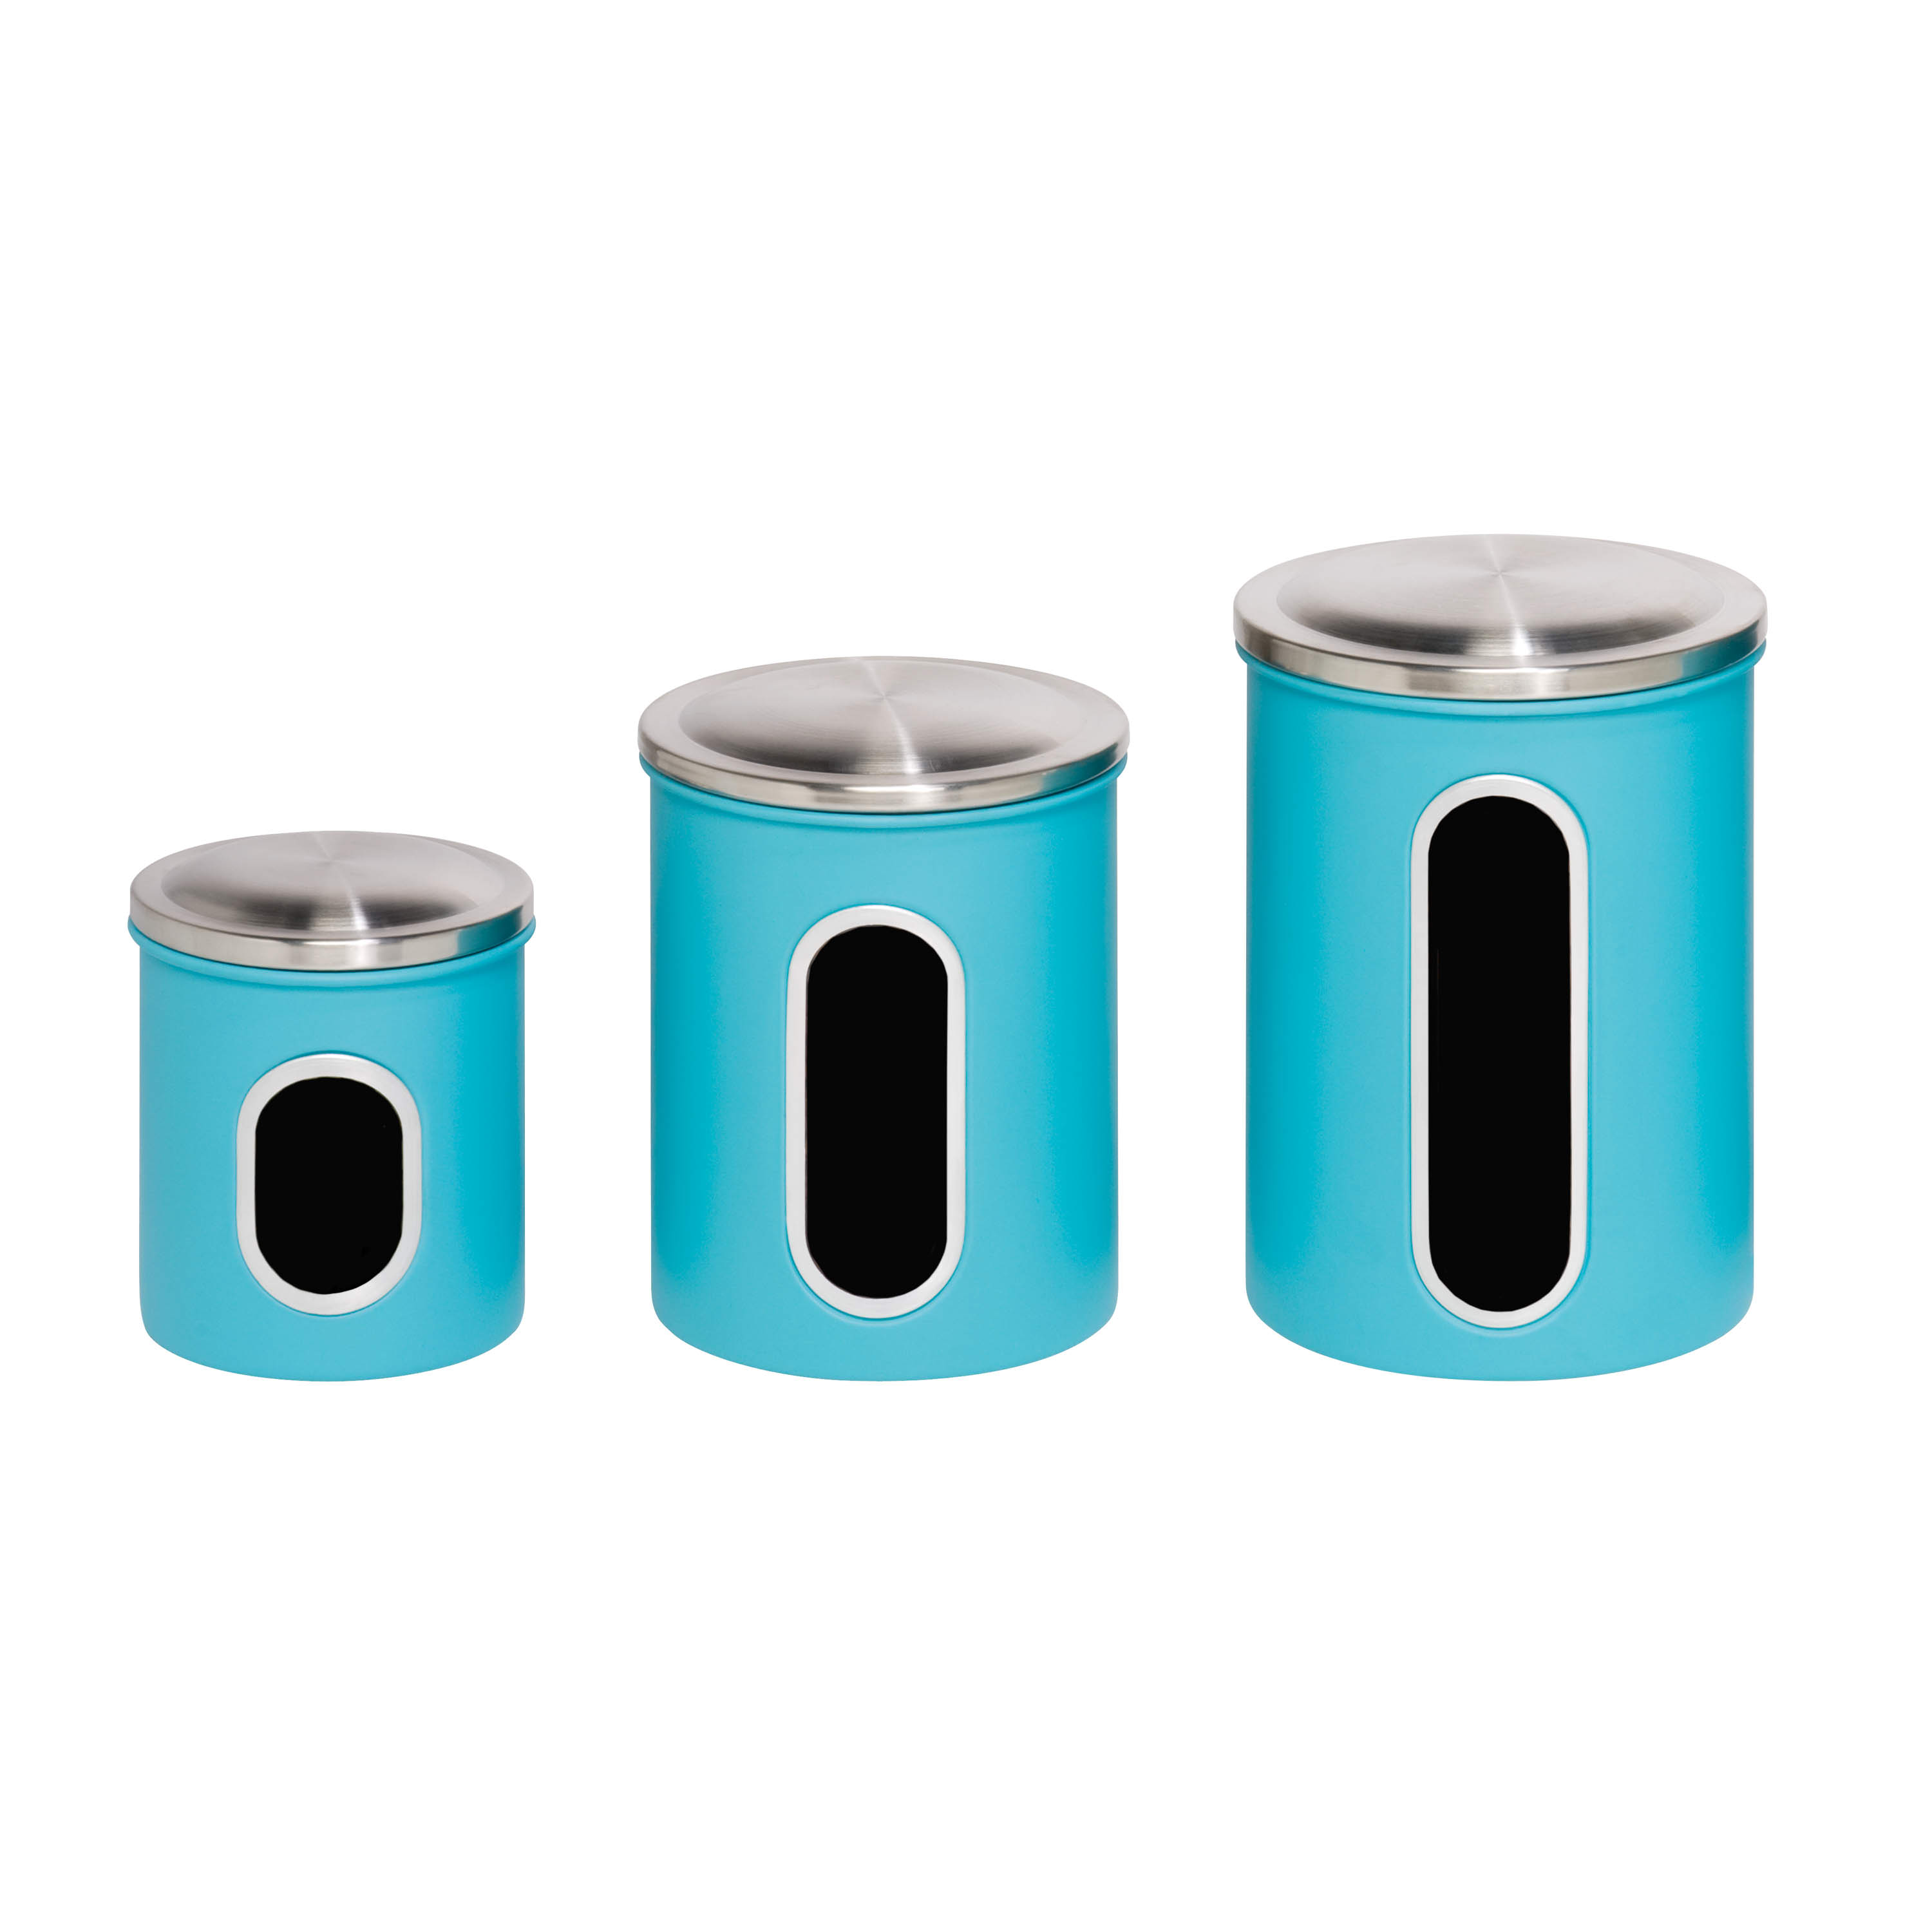 Mainstays 3Pk Metal Storage Canisters, Red - Walmart.com